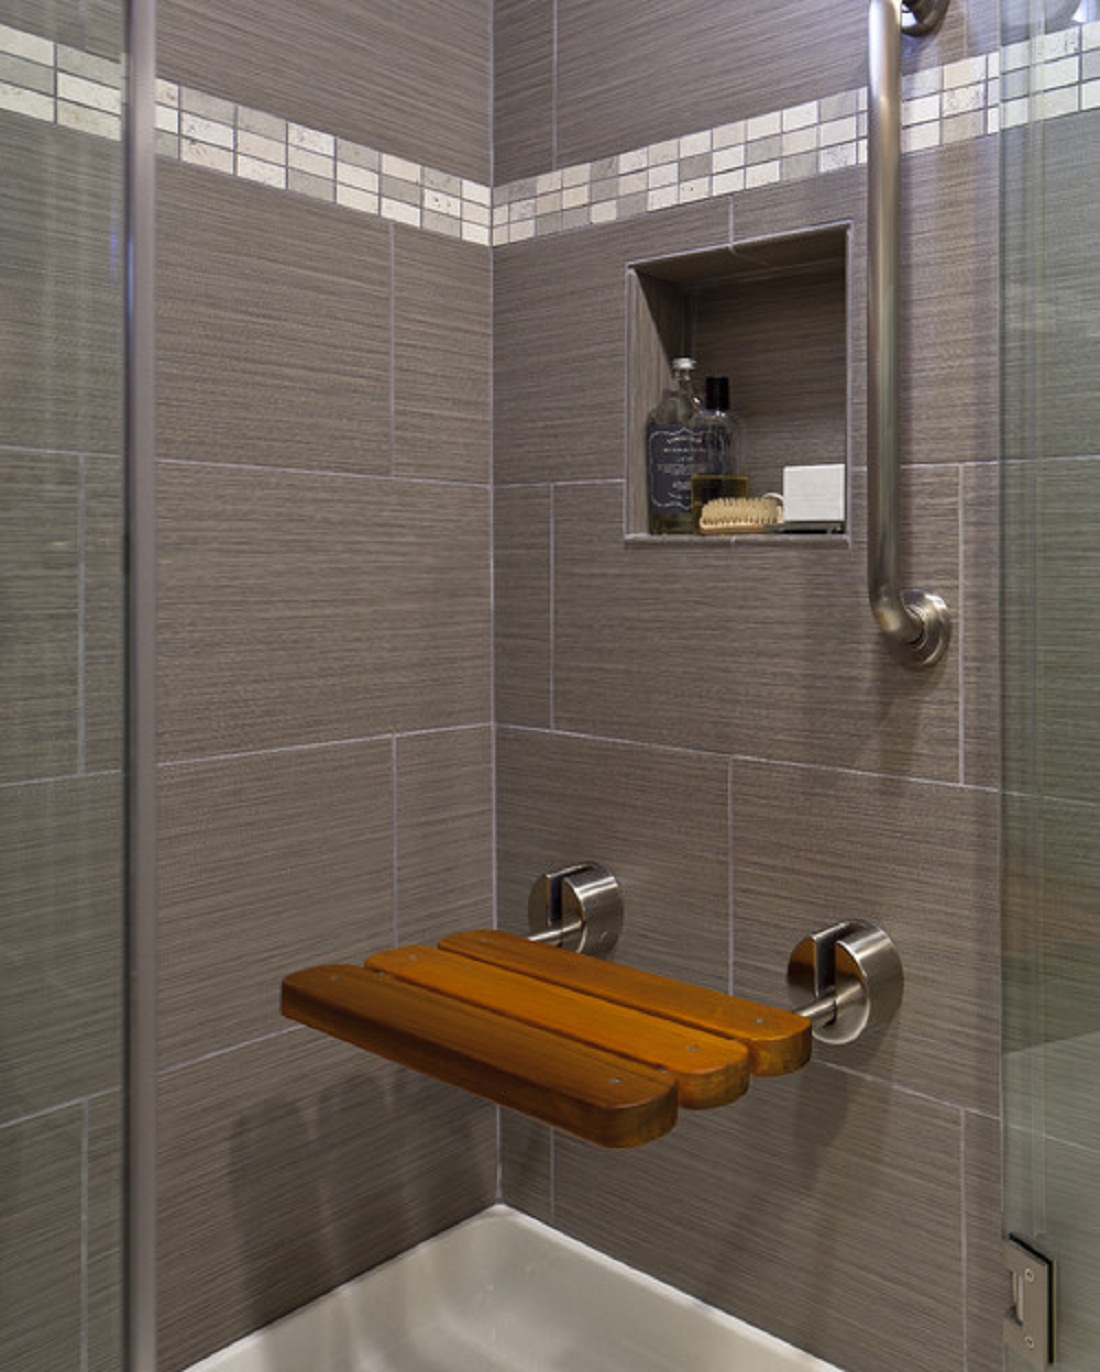 elegant-gray-bathroom-wall-tile-plus-square-niche-for-soap-with-perfume-idea-also-ultra-modern-shower-bench